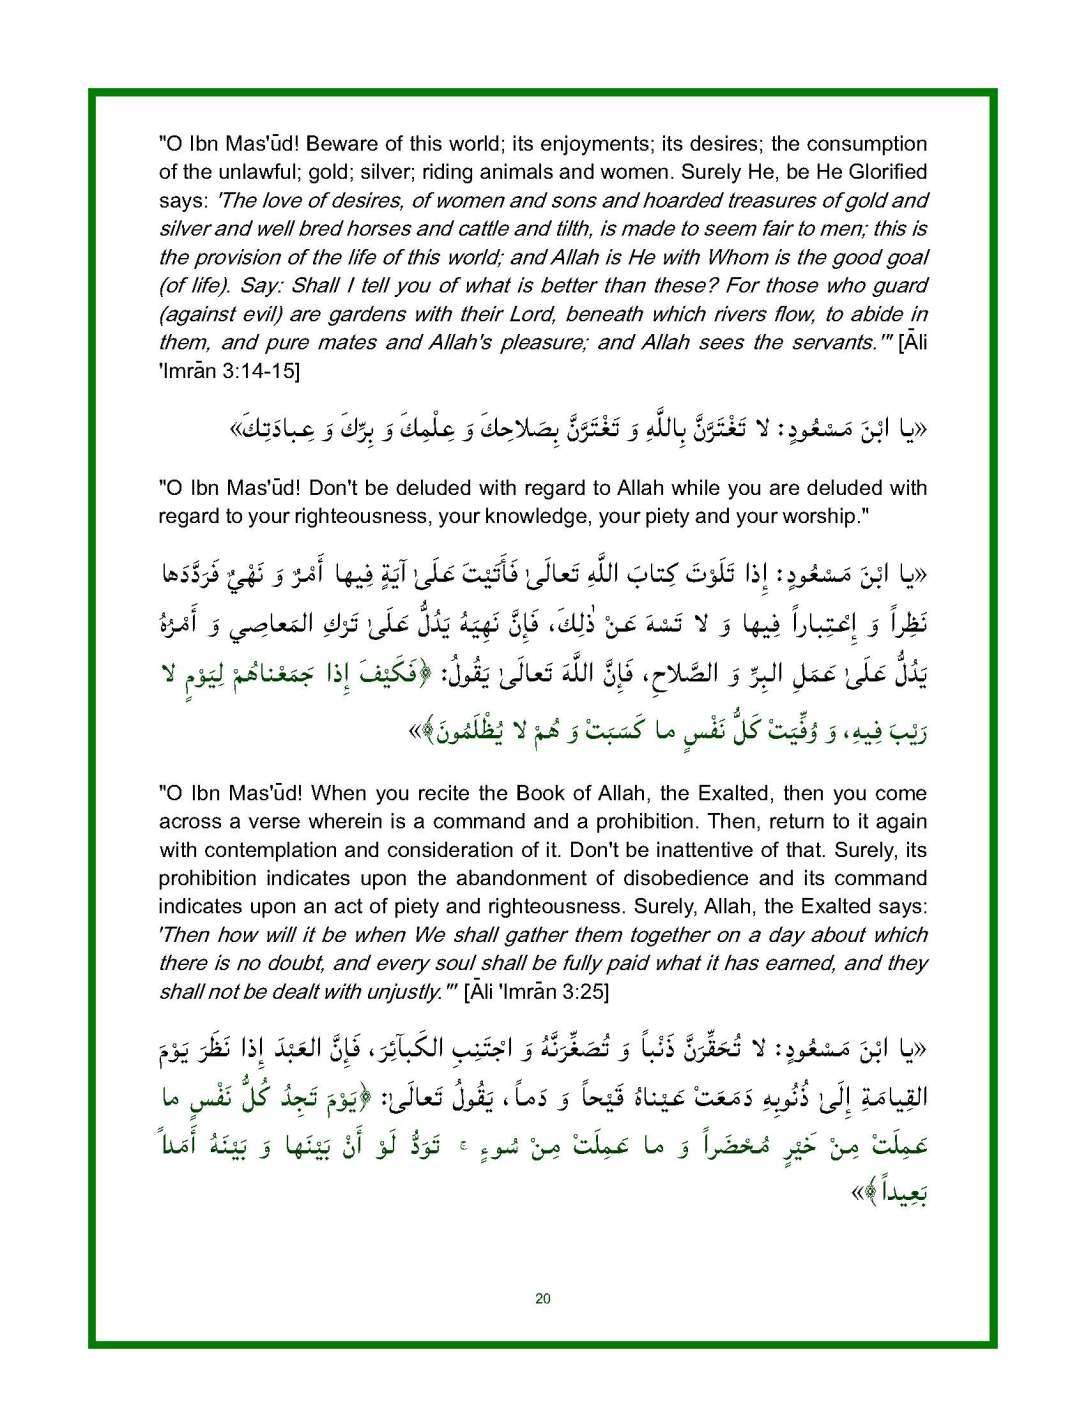 Spiritual-Advice-of-the-Messenger-of-Allah-for-Ibn-Masud-unlocked_Page_20